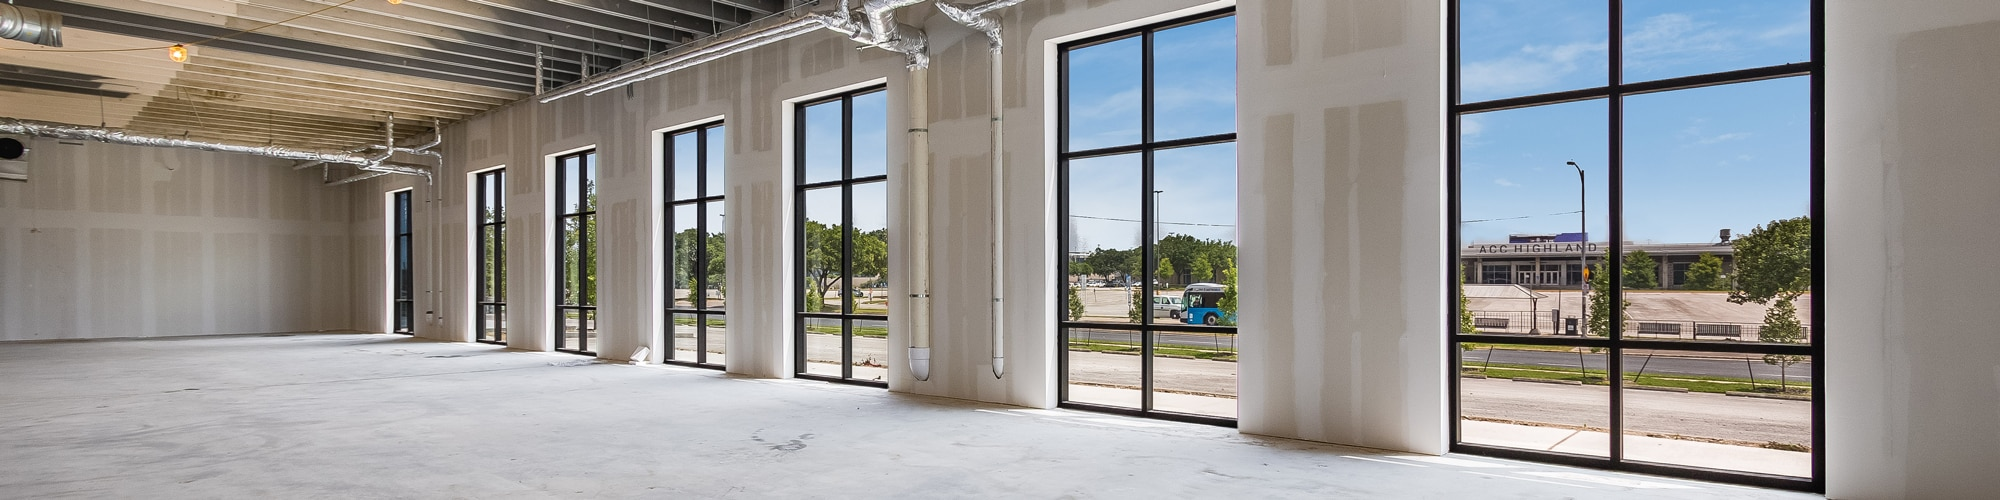 Highland-Tech-Center-May-2020-Interior-7